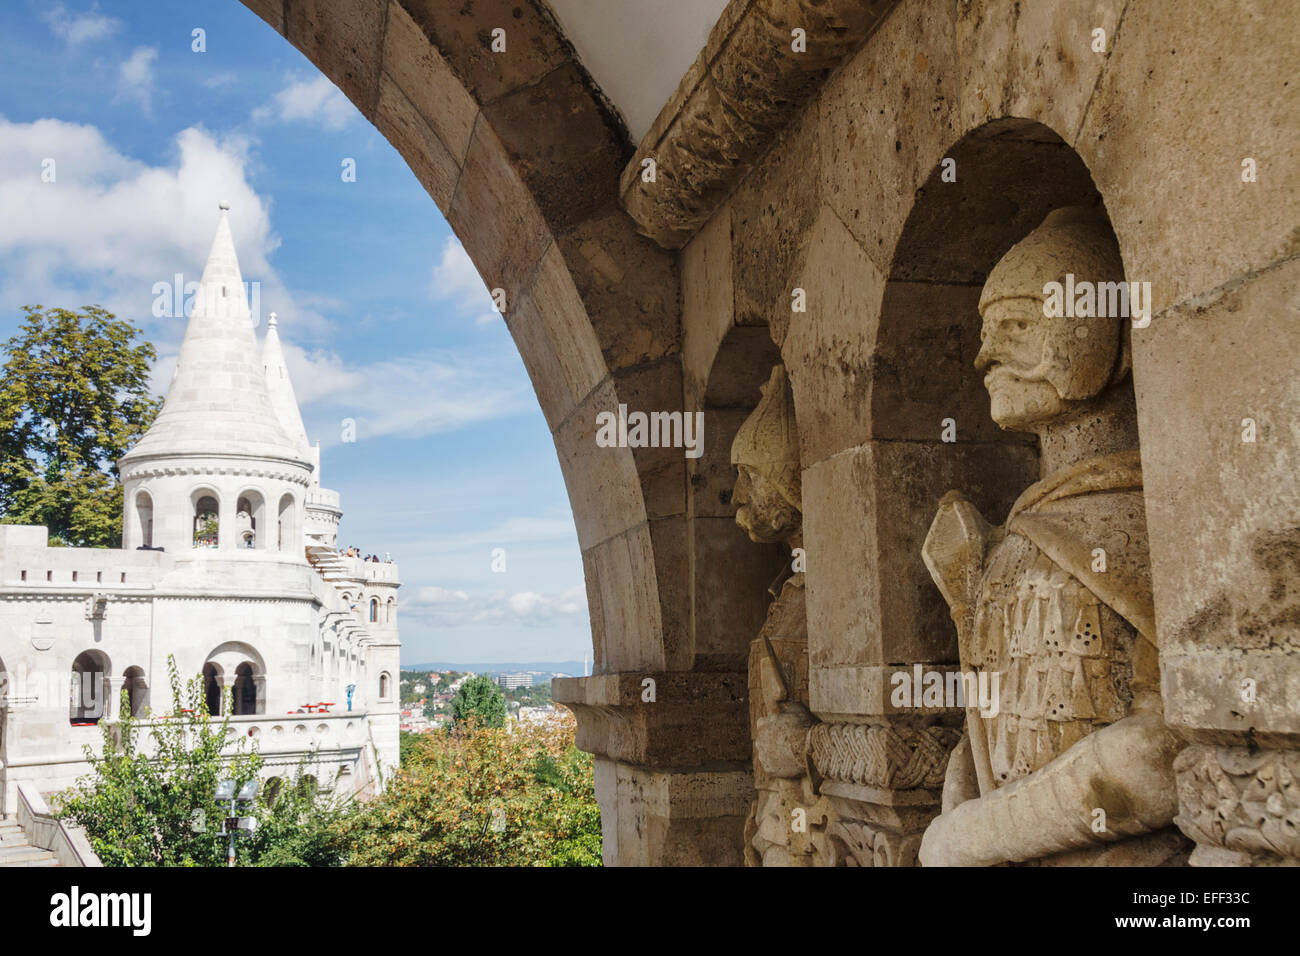 Fisherman's bastion, Budapest, Hungary - Stock Image